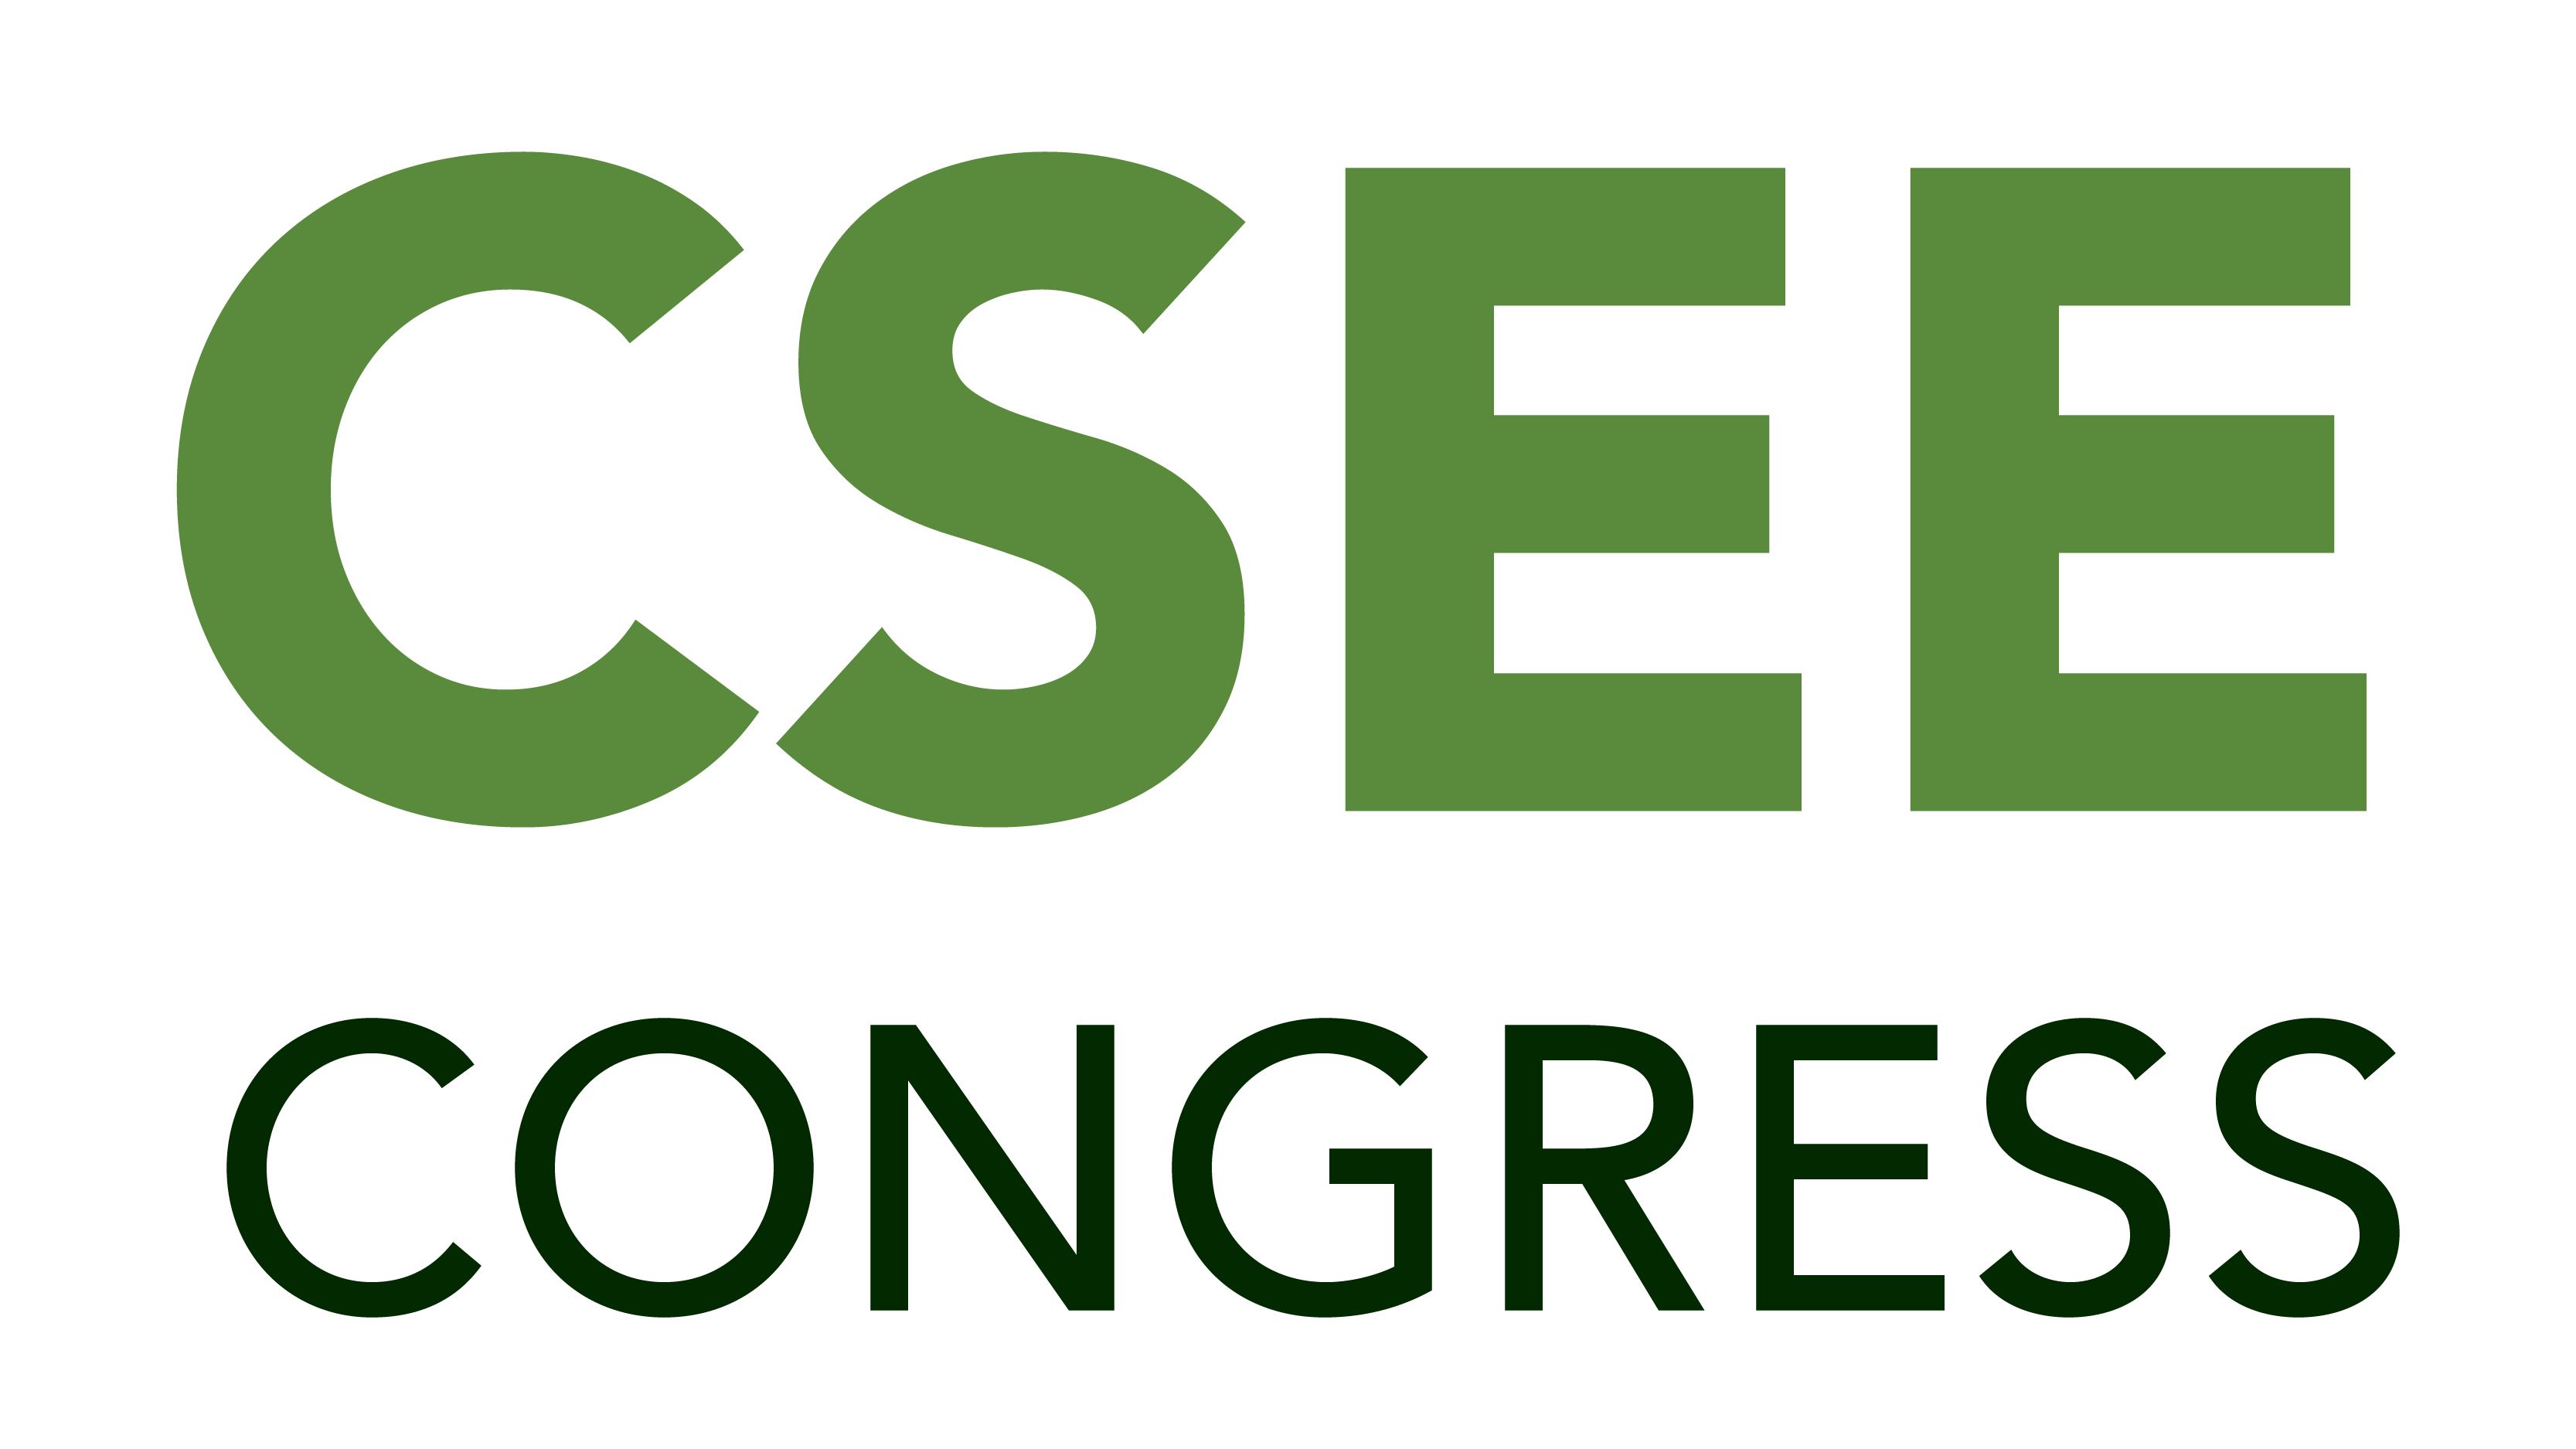 3rd World Congress on Civil, Structural, and Environmental Engineering, April 7 - 9, 2019 | Rome, Italy